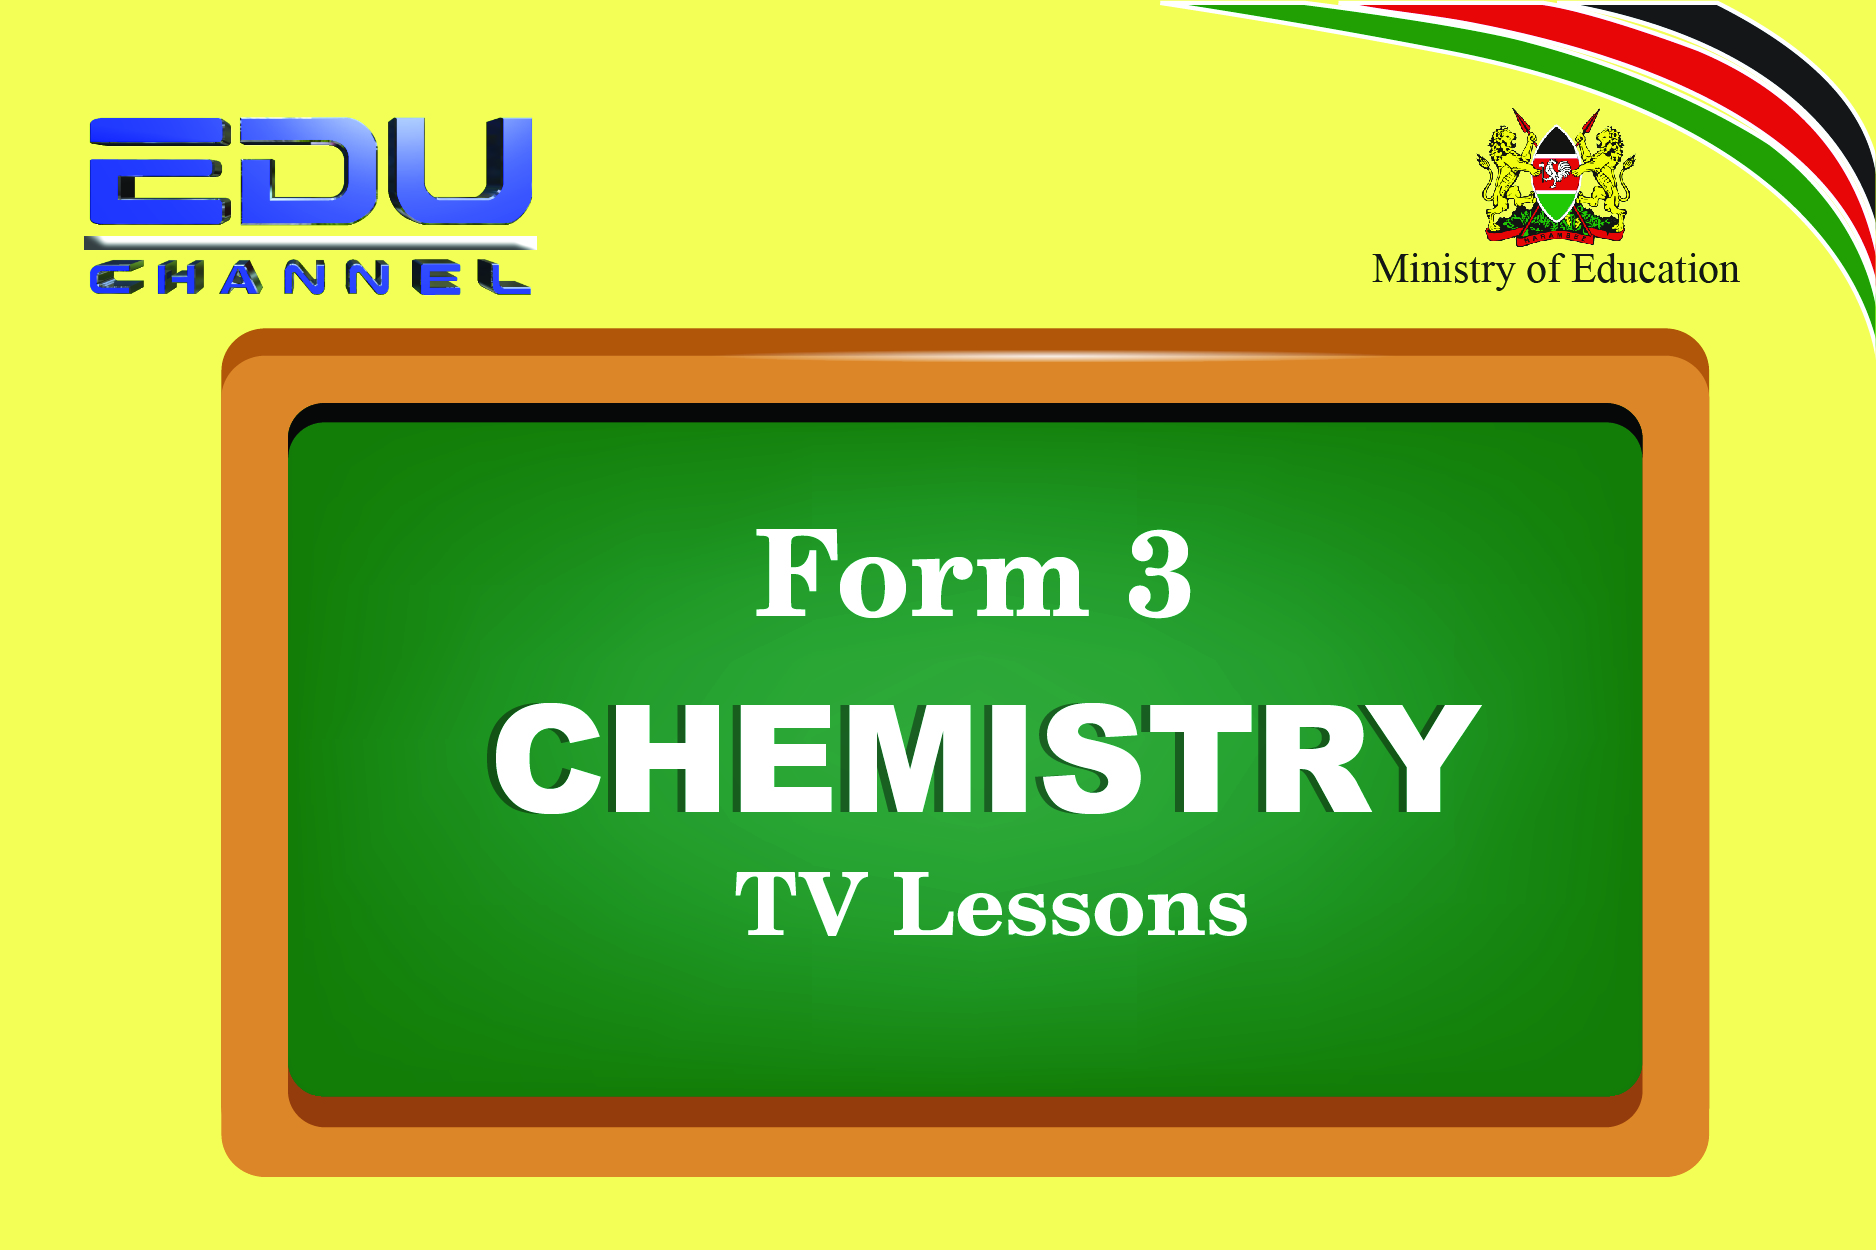 Form 3 Chemistry Lesson 3: Nitrogen and it's compounds